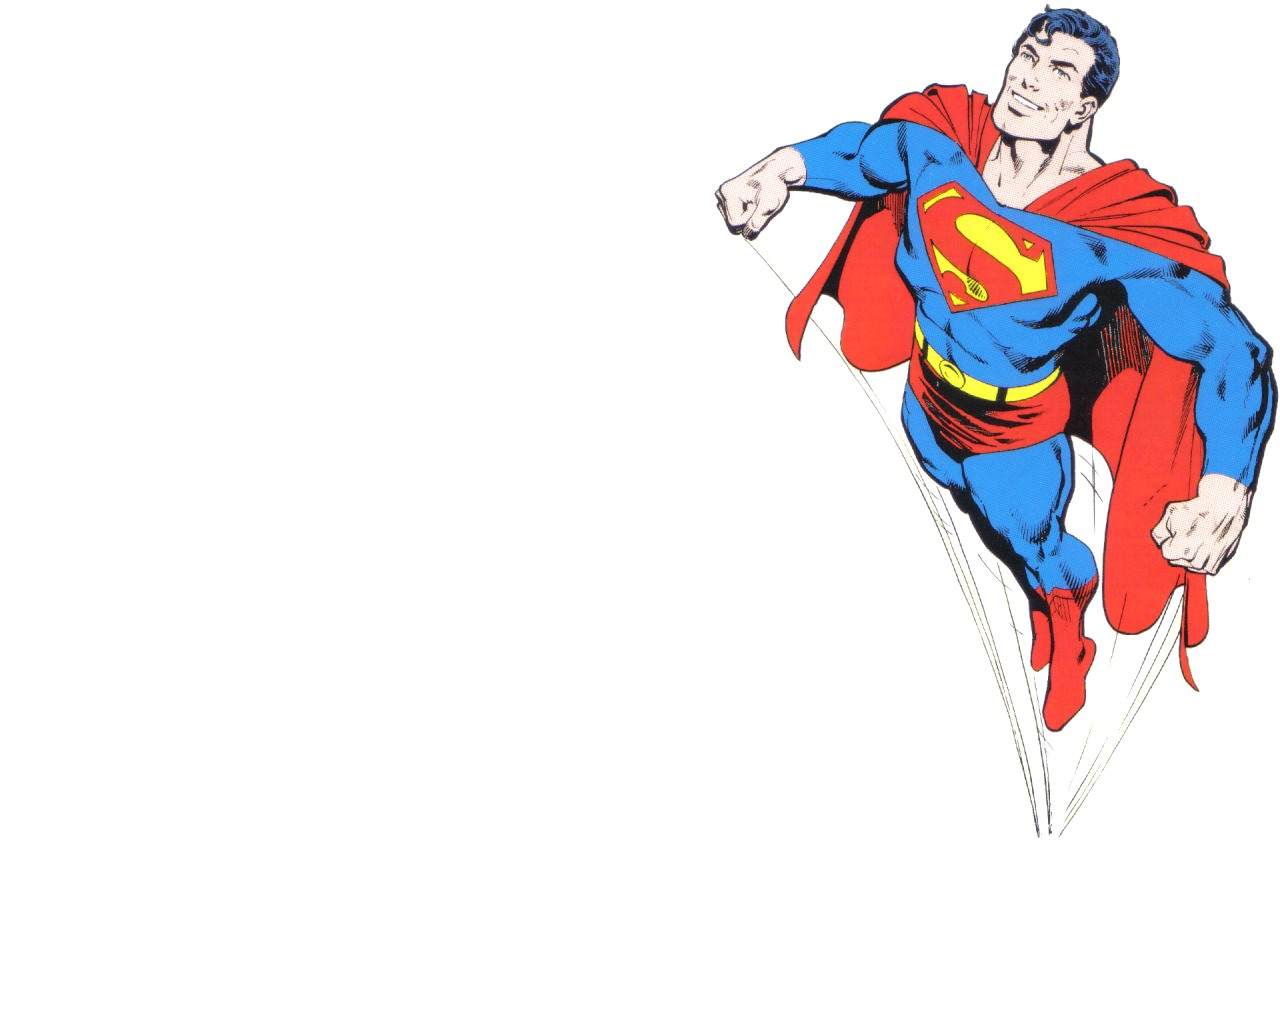 Windows wallpaper background wallpaper Superman Wallpaper 1280x1024